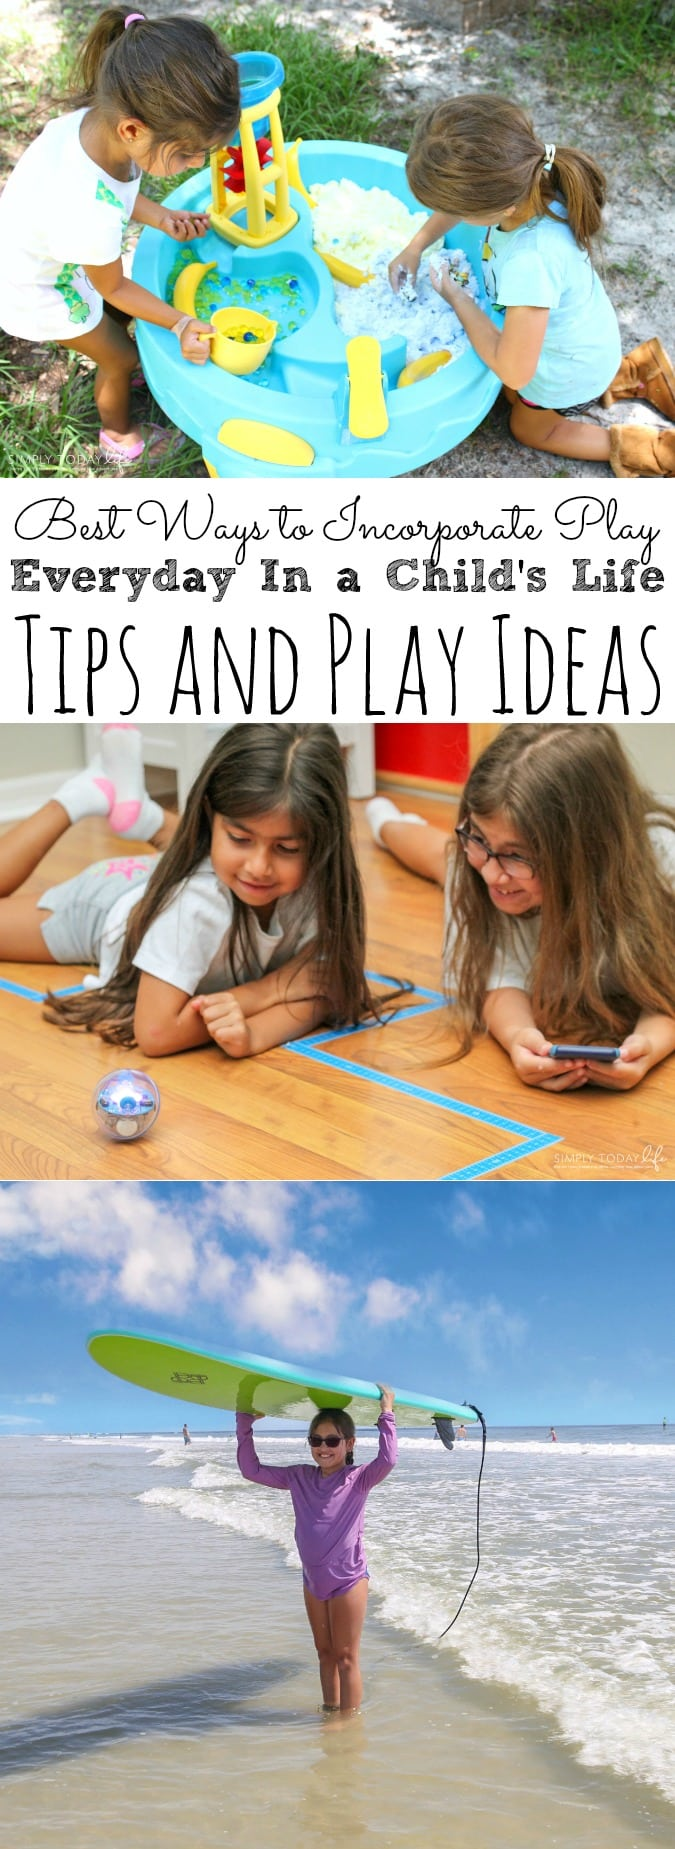 Best Ways To Incorporate Play Every Day In Your Child's Life | Tips and Play Ideas #ad #GeniusofPlay #Elvalordejugar - simplytodaylife.com